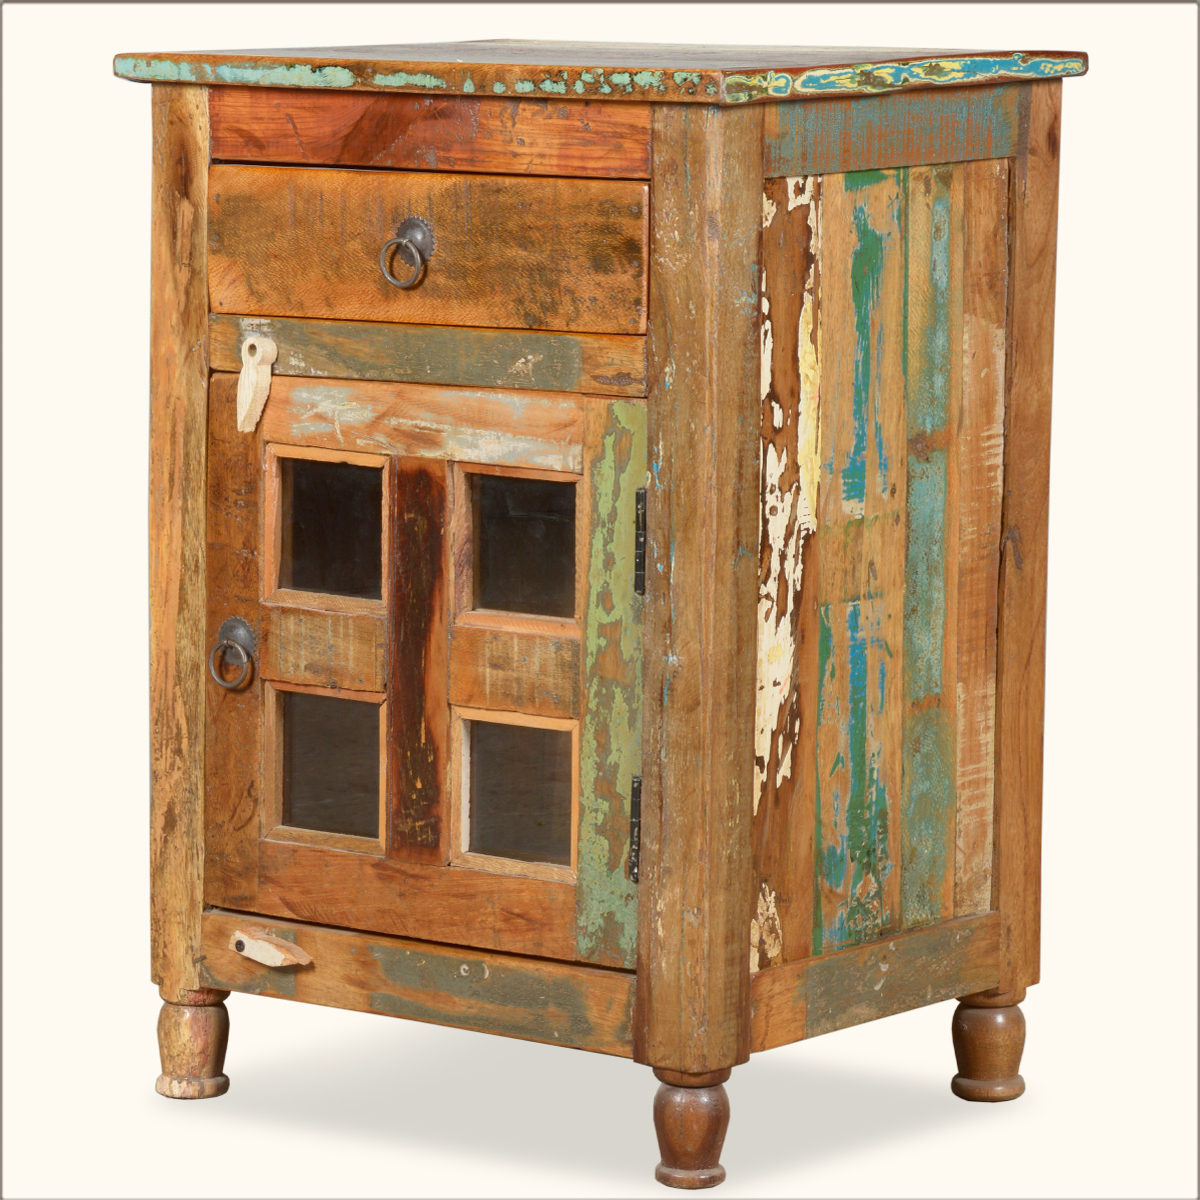 rustic reclaimed end table with storage drawer wood night stand furniture ebay. Black Bedroom Furniture Sets. Home Design Ideas